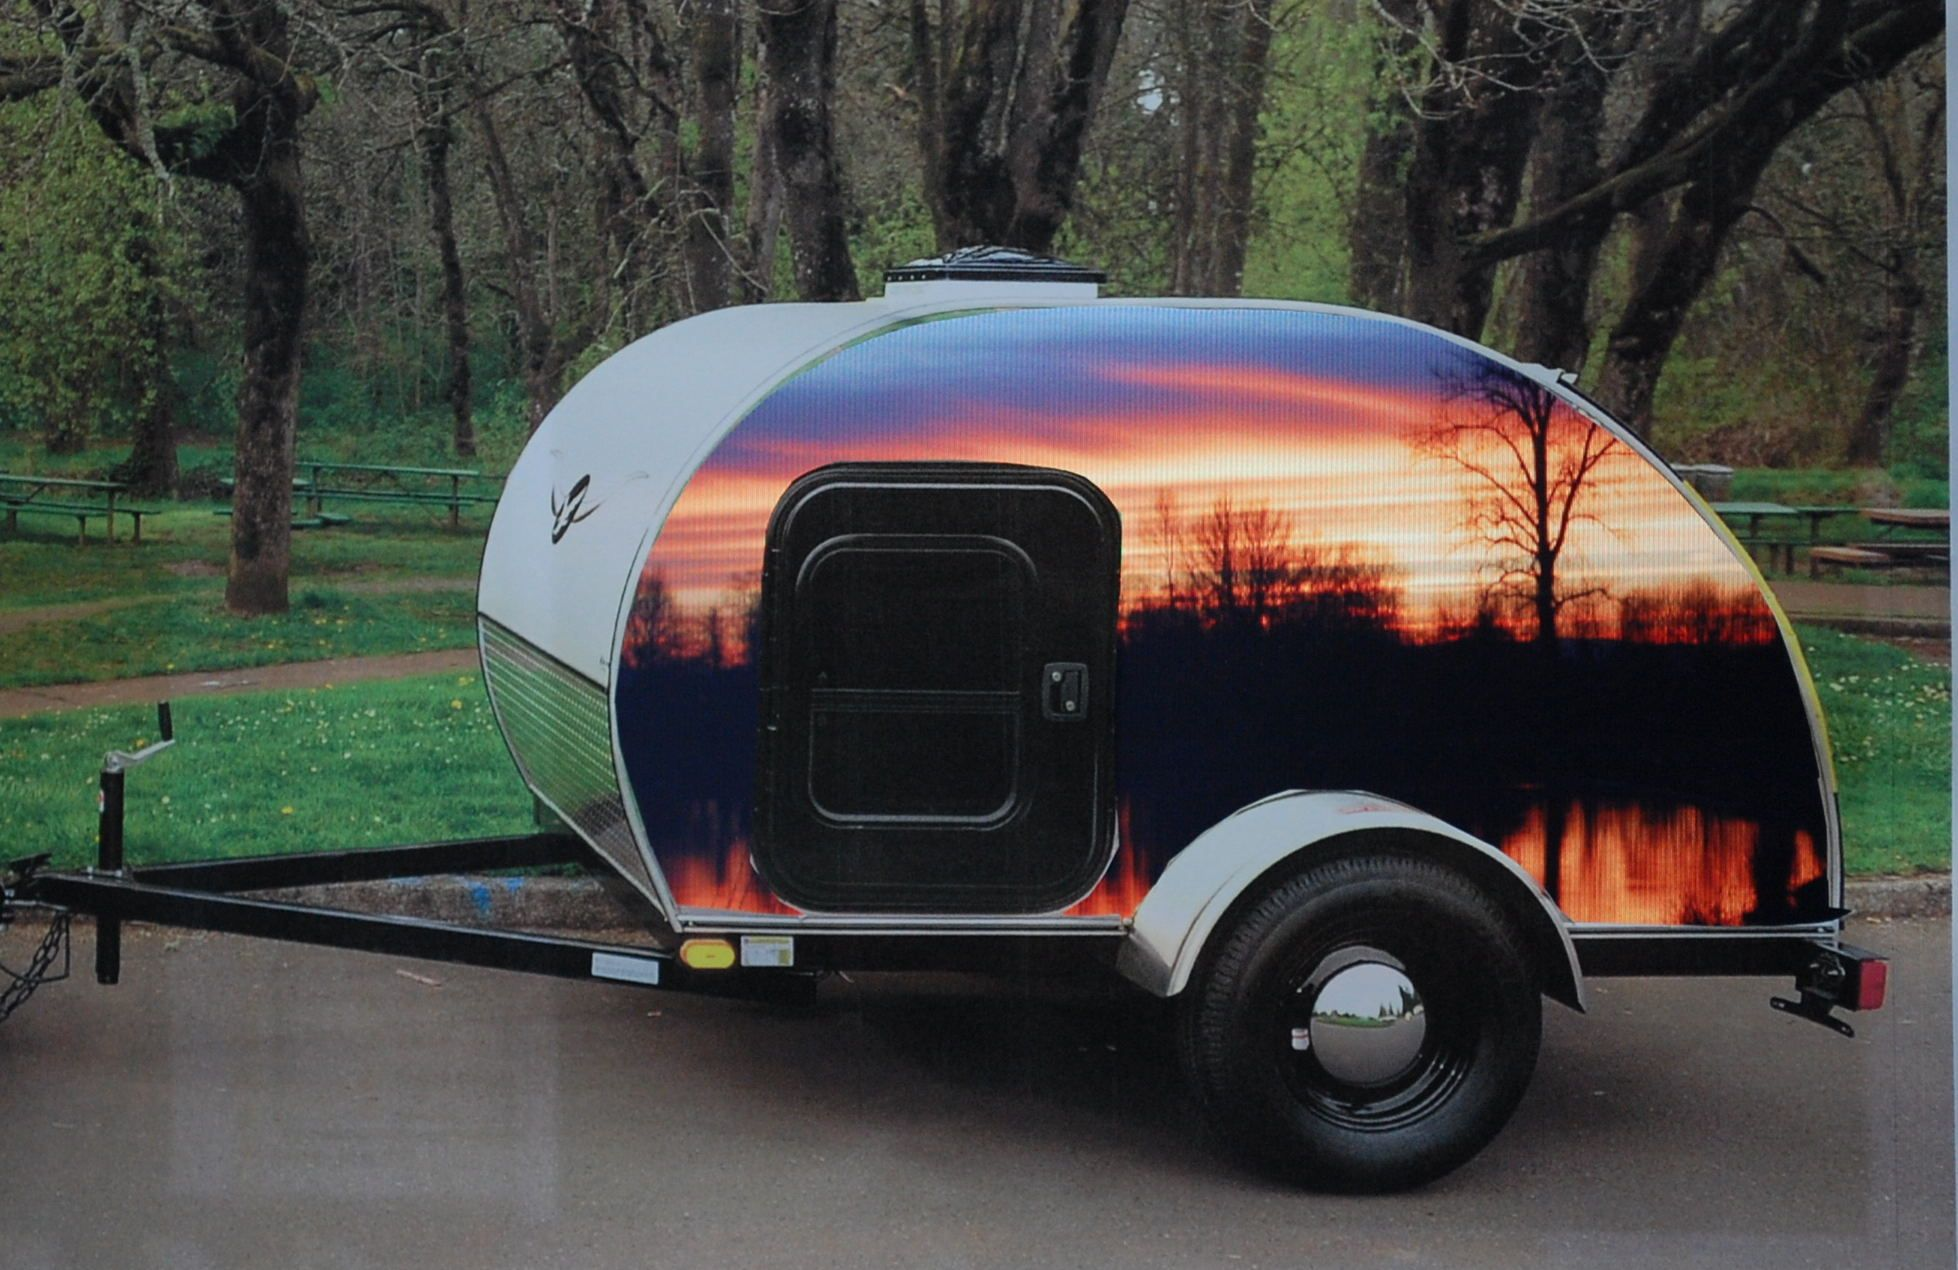 Posted in retro vintage tagged classic cars teardrop caravan vintage - Vintage Caravans Teardrop Trailers Http Teardropsnw Com Galleries Custom Art